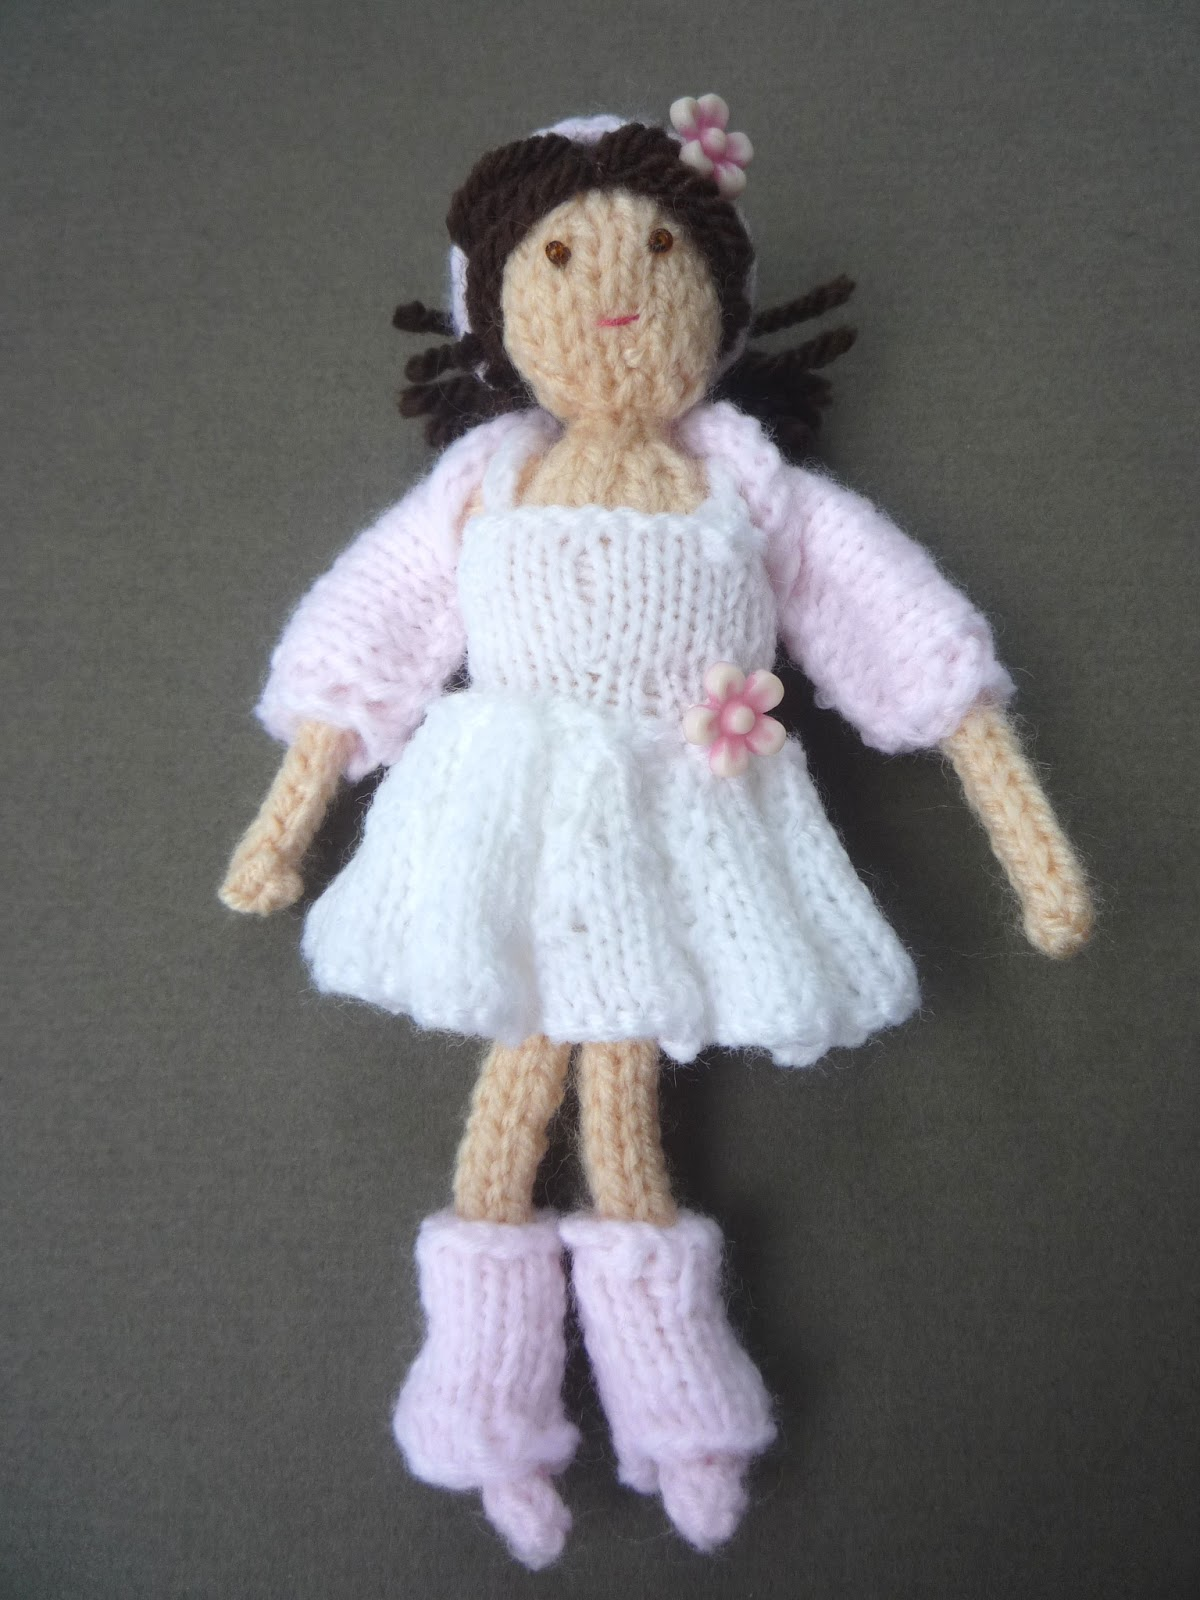 Free Toy Knitting Patterns Only : the Creations of Crazy Dazy: new pattern release